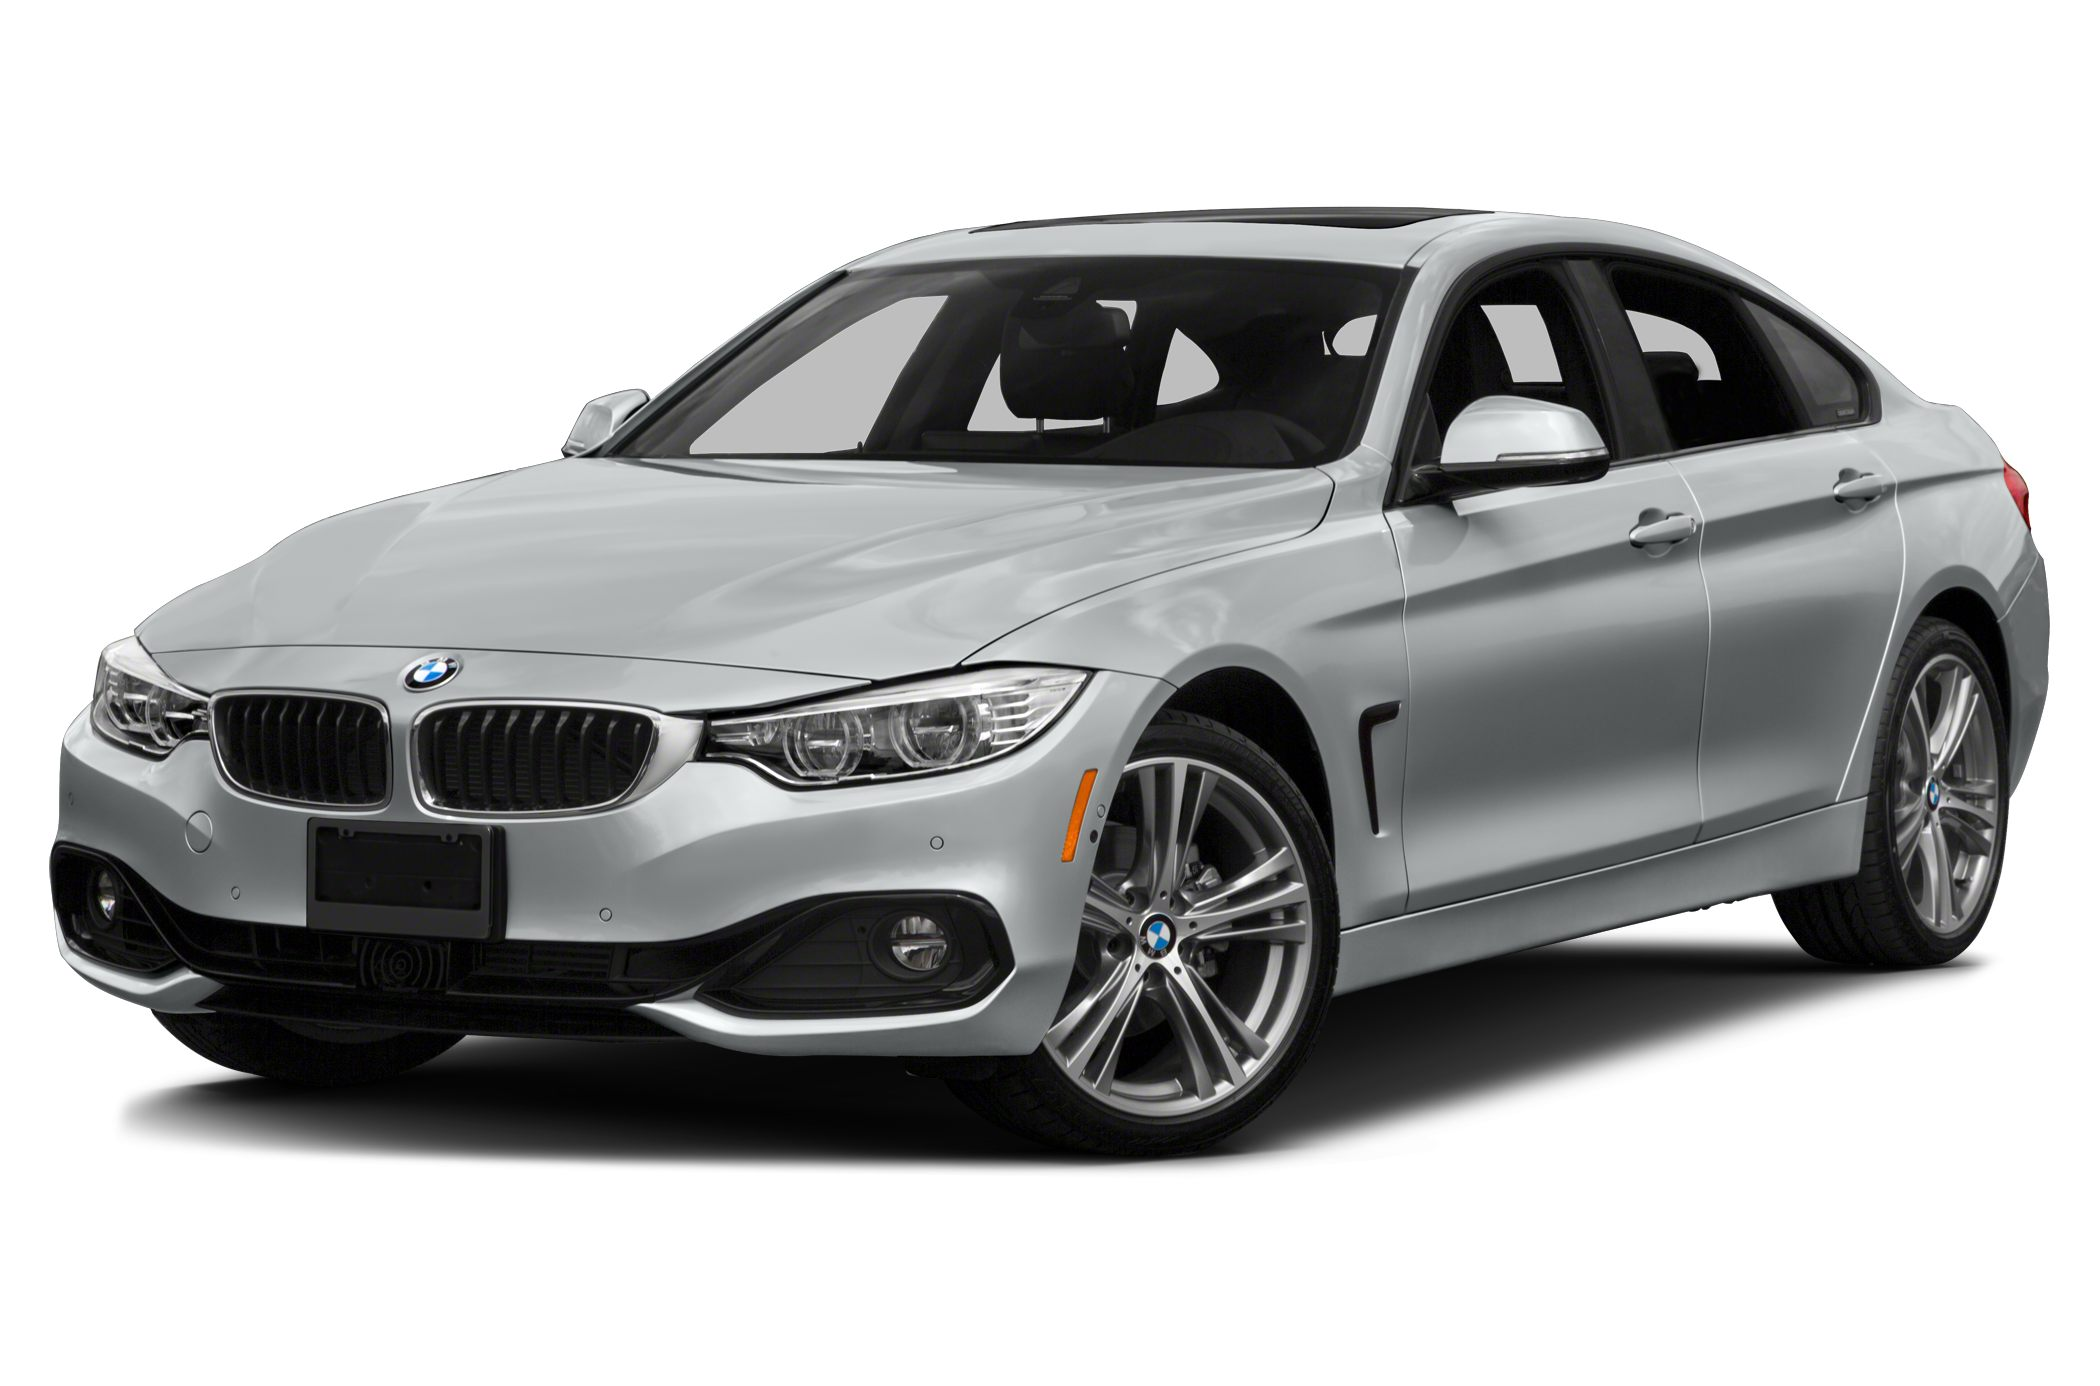 2015 BMW 428 Gran Coupe I Hatchback for sale in Baton Rouge for $49,750 with 10 miles